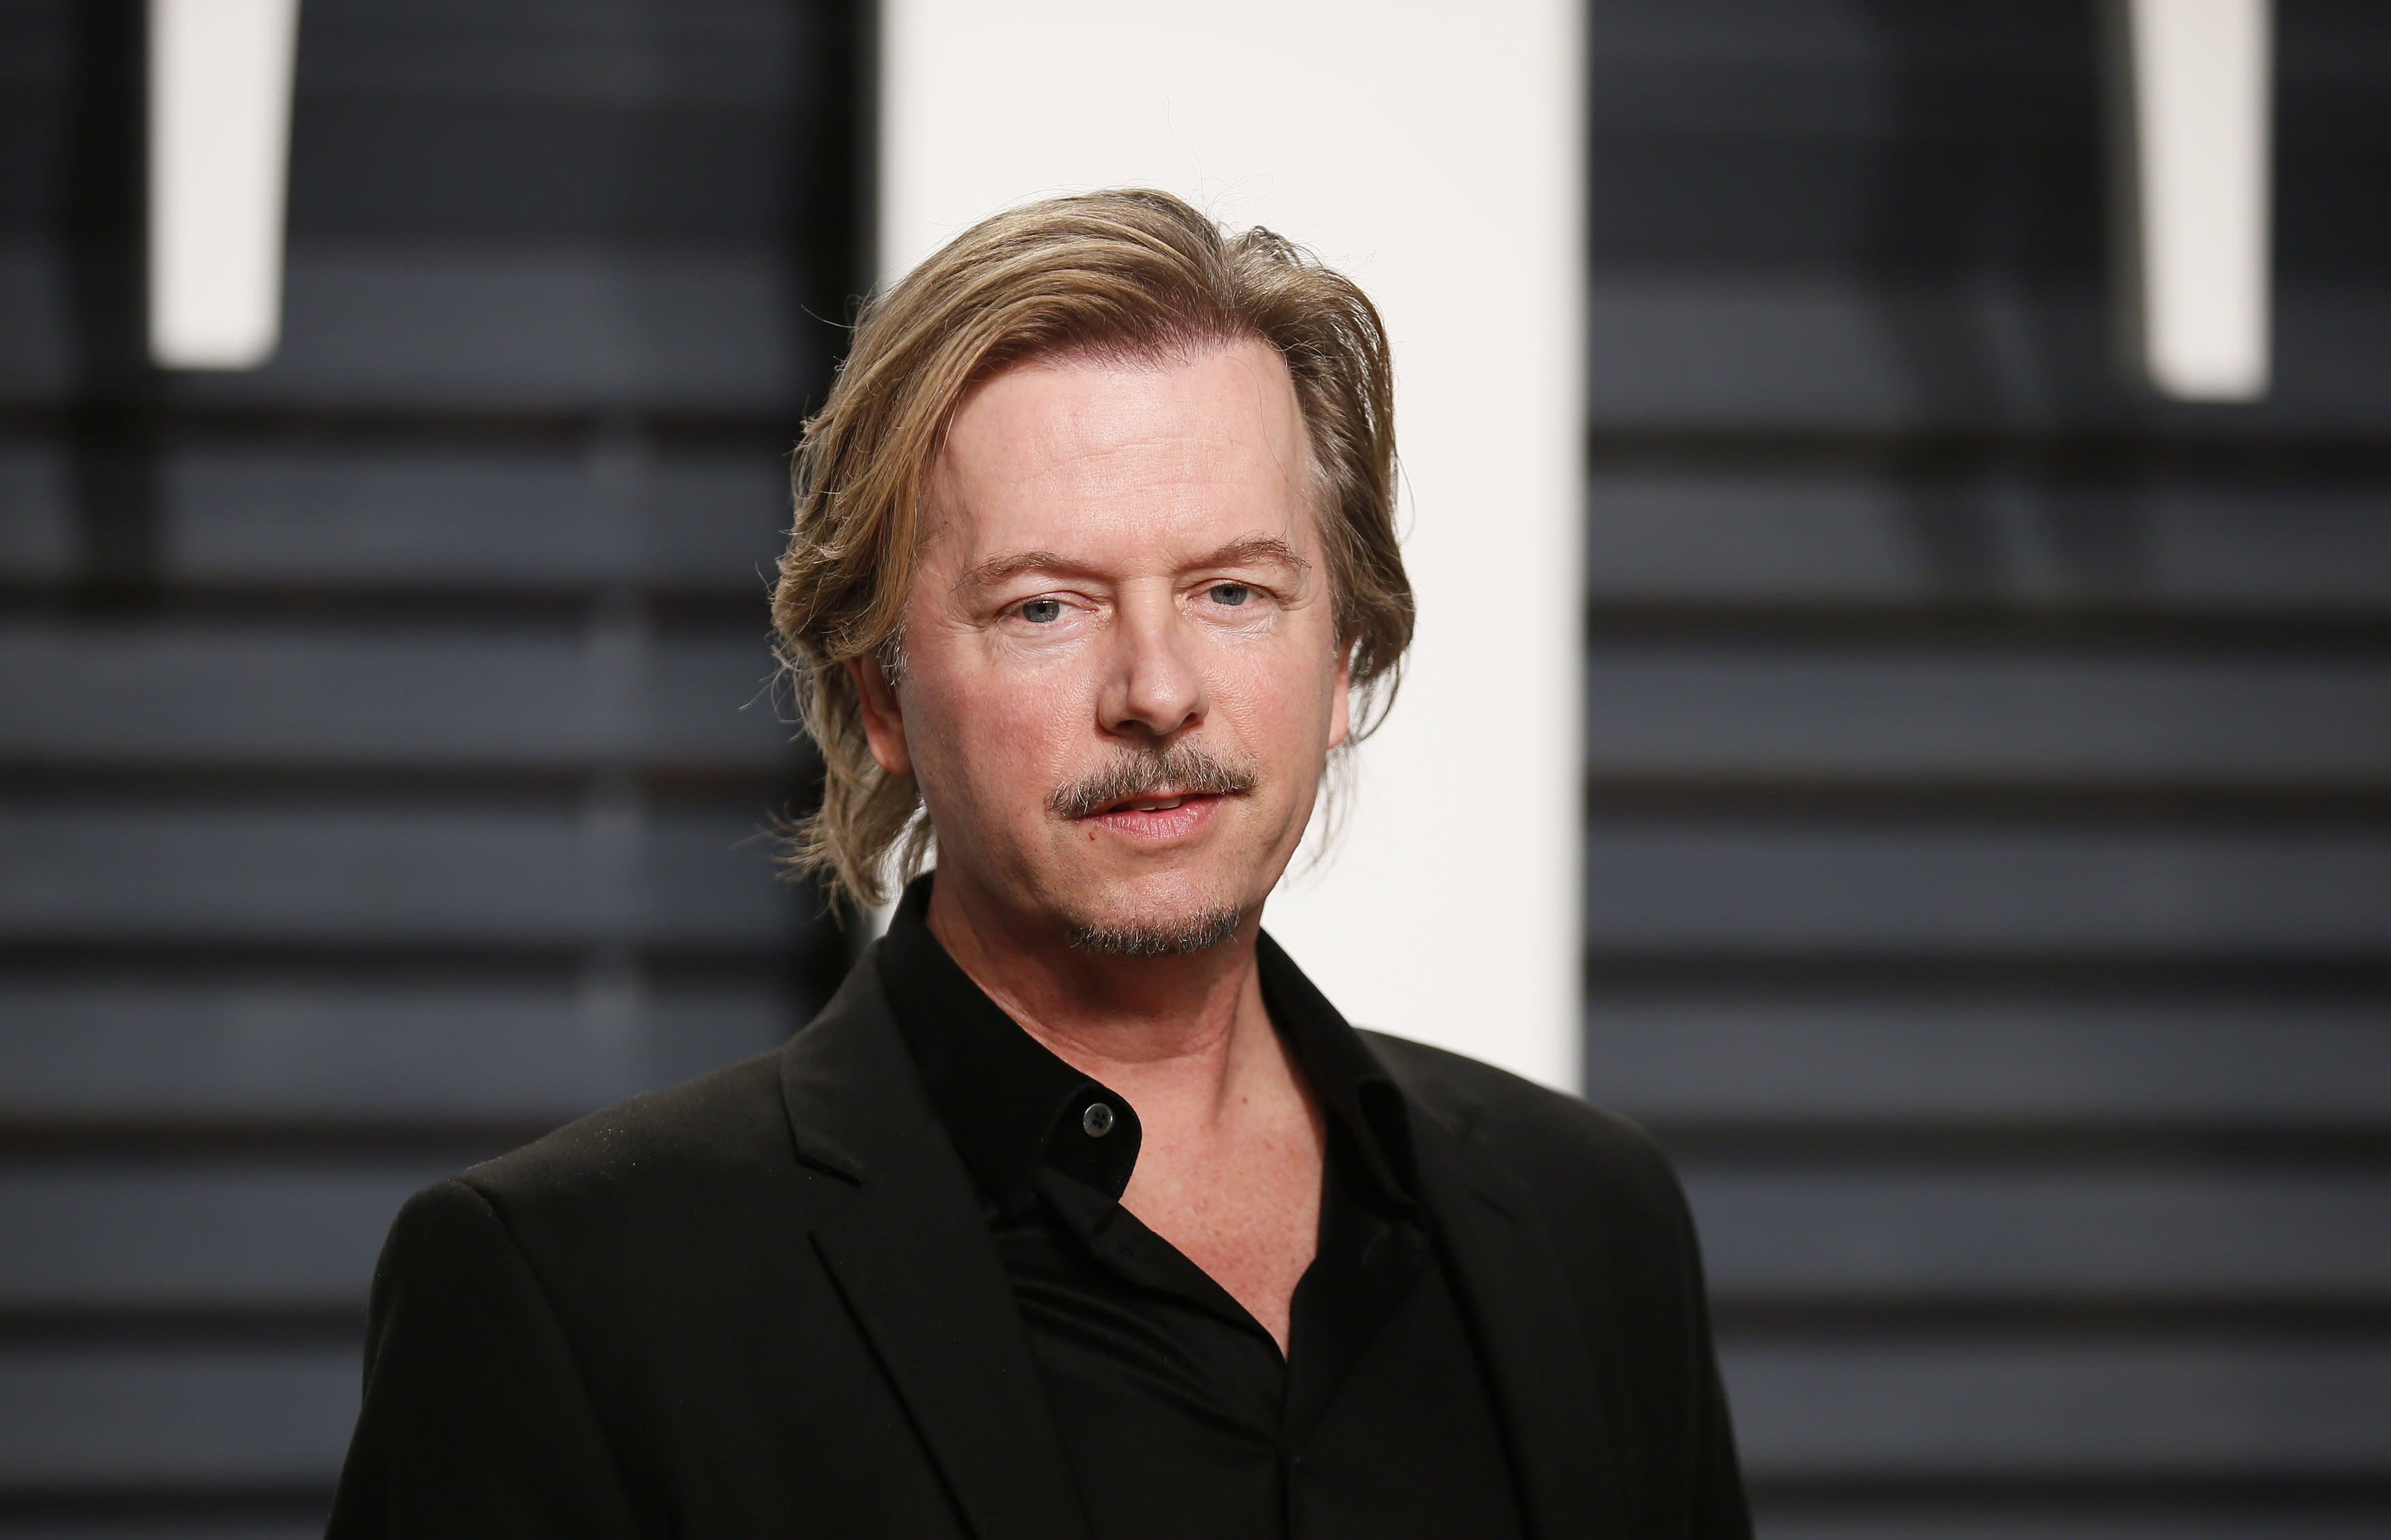 David Spade on Shane Gillis: When I was on 'SNL,' people didn't 'rifle through your past to make sure you get fired'